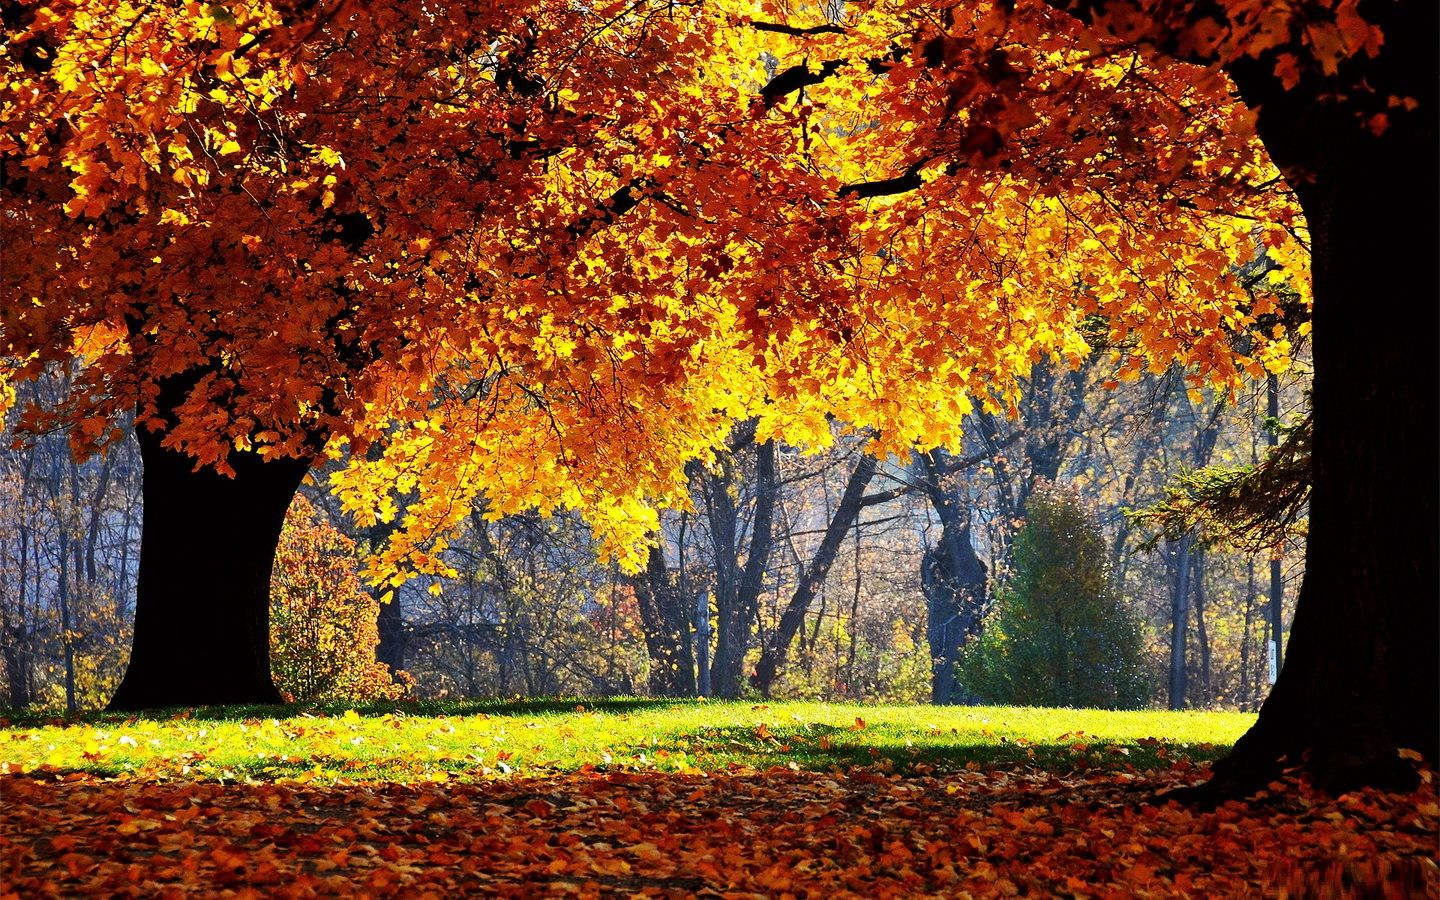 Top Best Wallpapers In The World Free Download Desktop Wallpapers 1440 900 Top 10 Desktop Wallpaper Desktop Wallpaper Fall Autumn Landscape Scenery Wallpaper